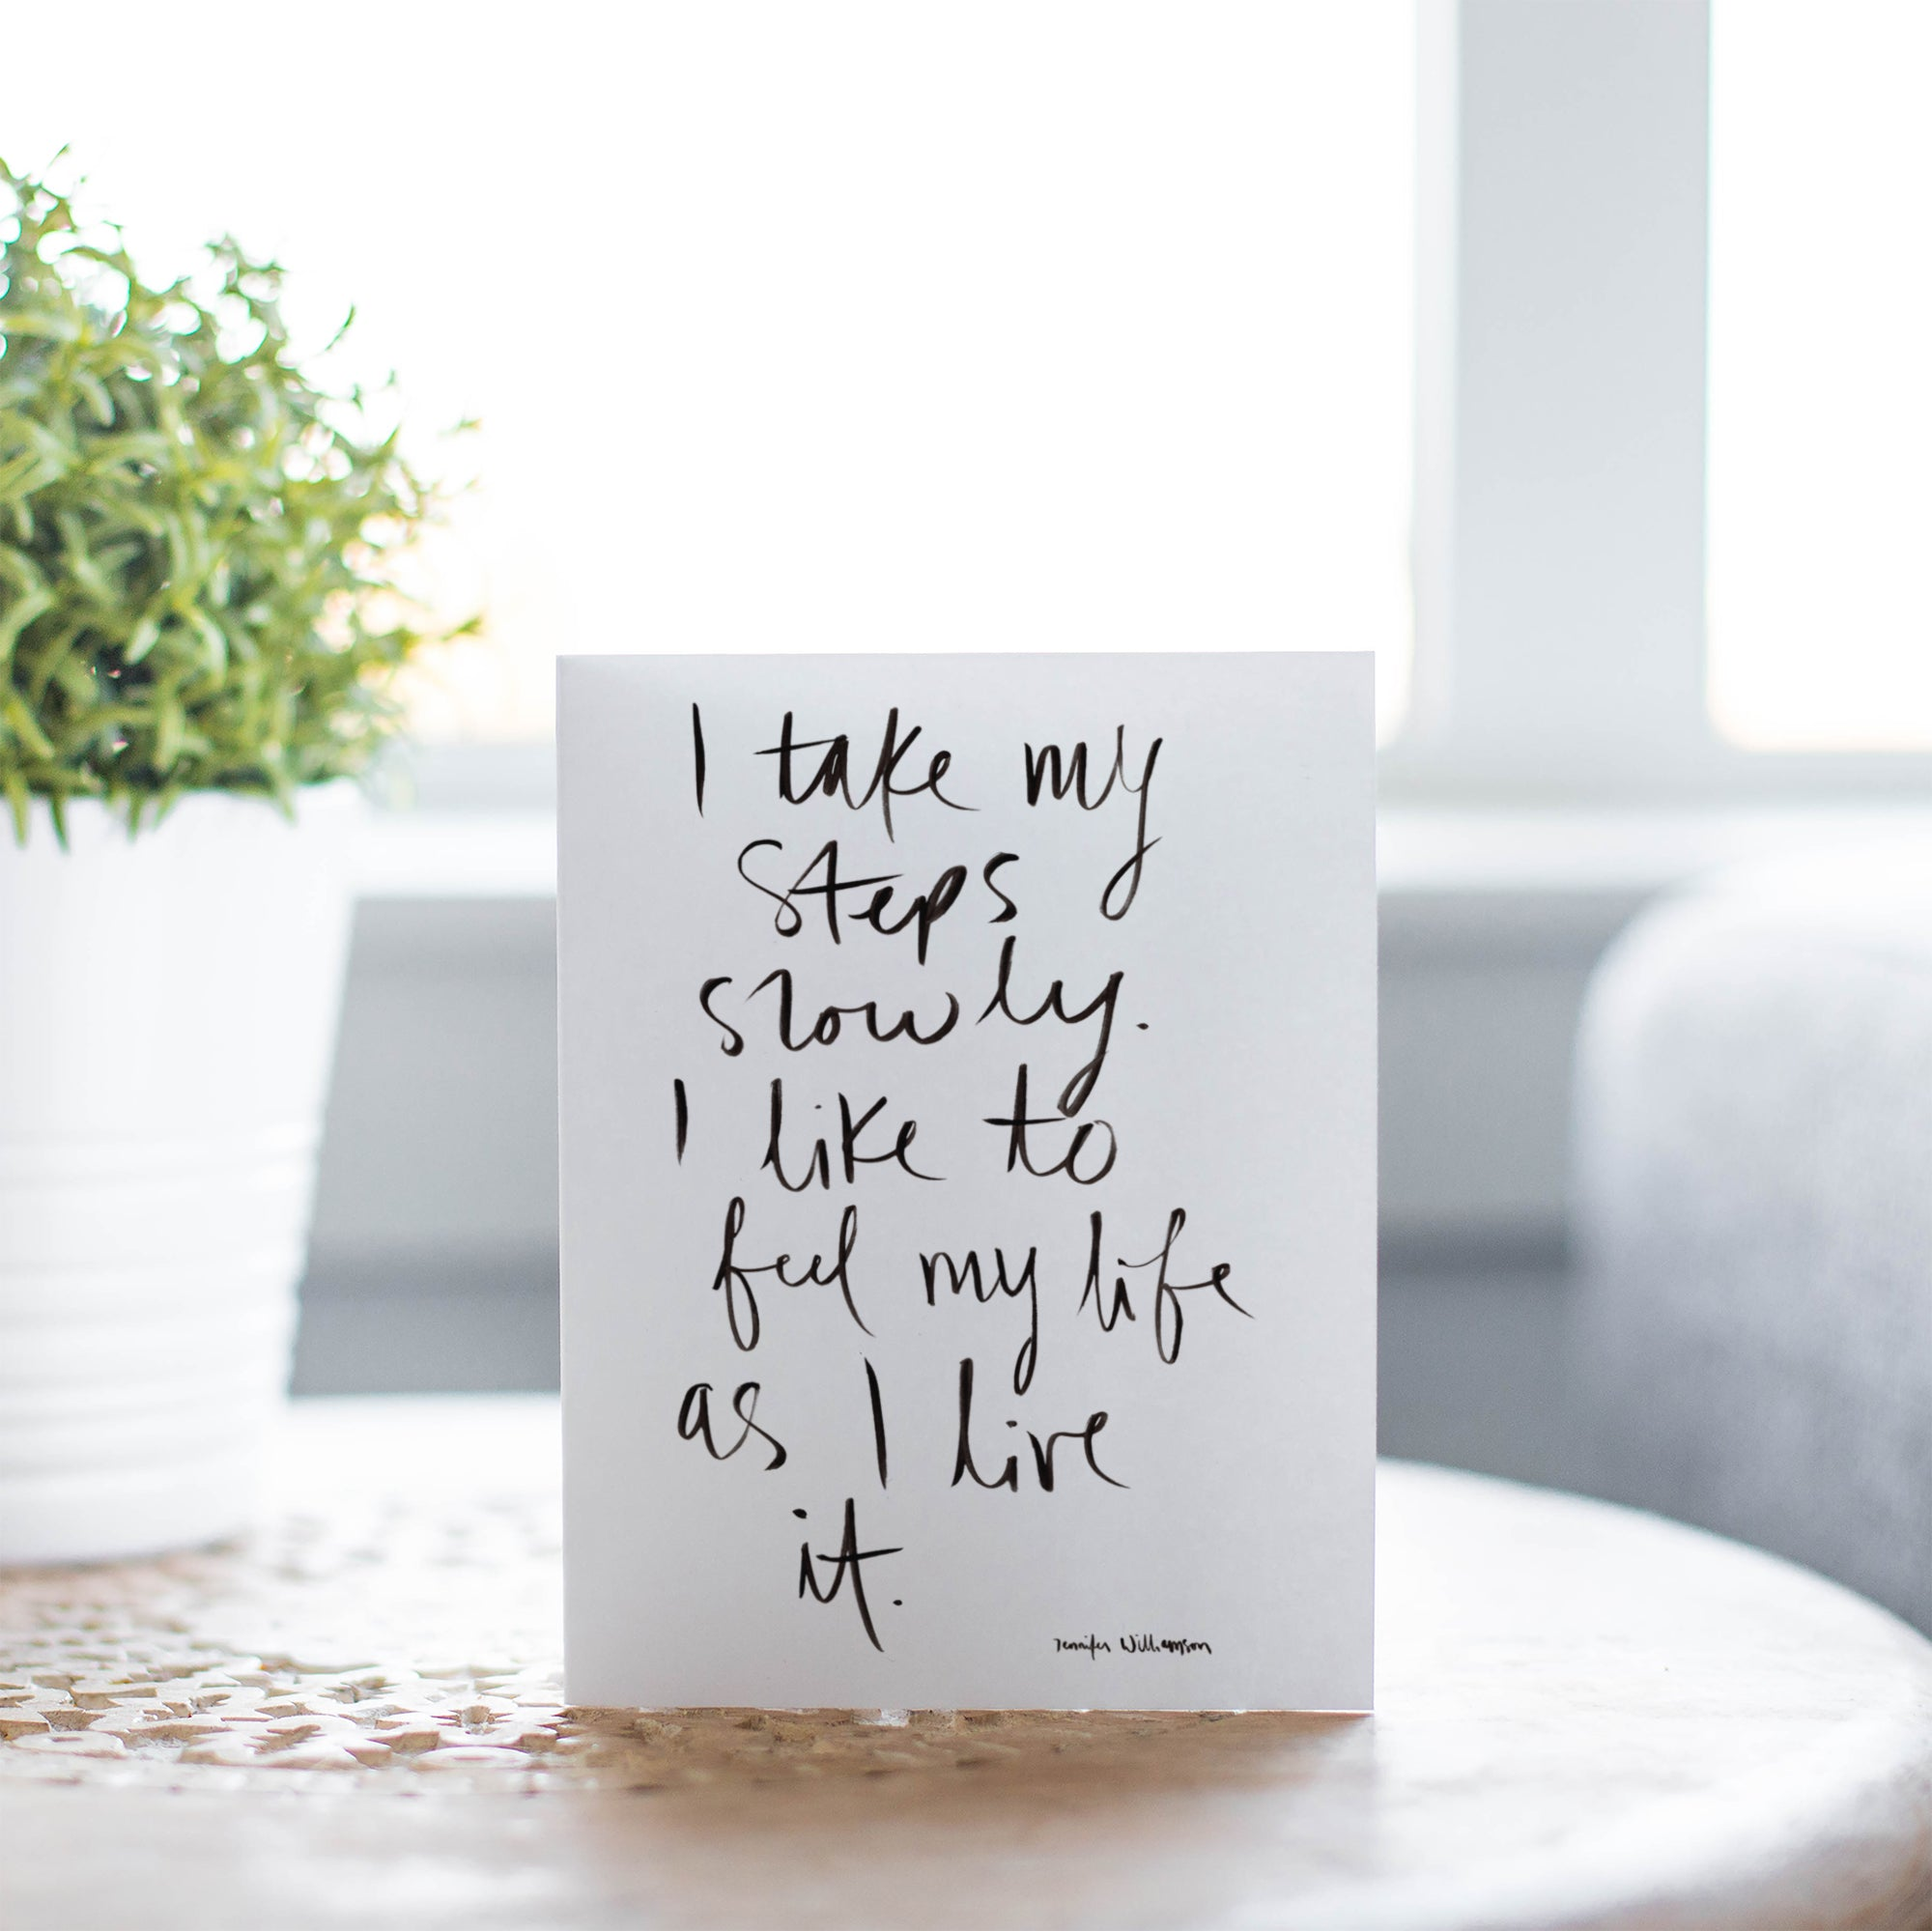 I Take My Steps Slowly Hand Lettered Affirmation Encouragement Card